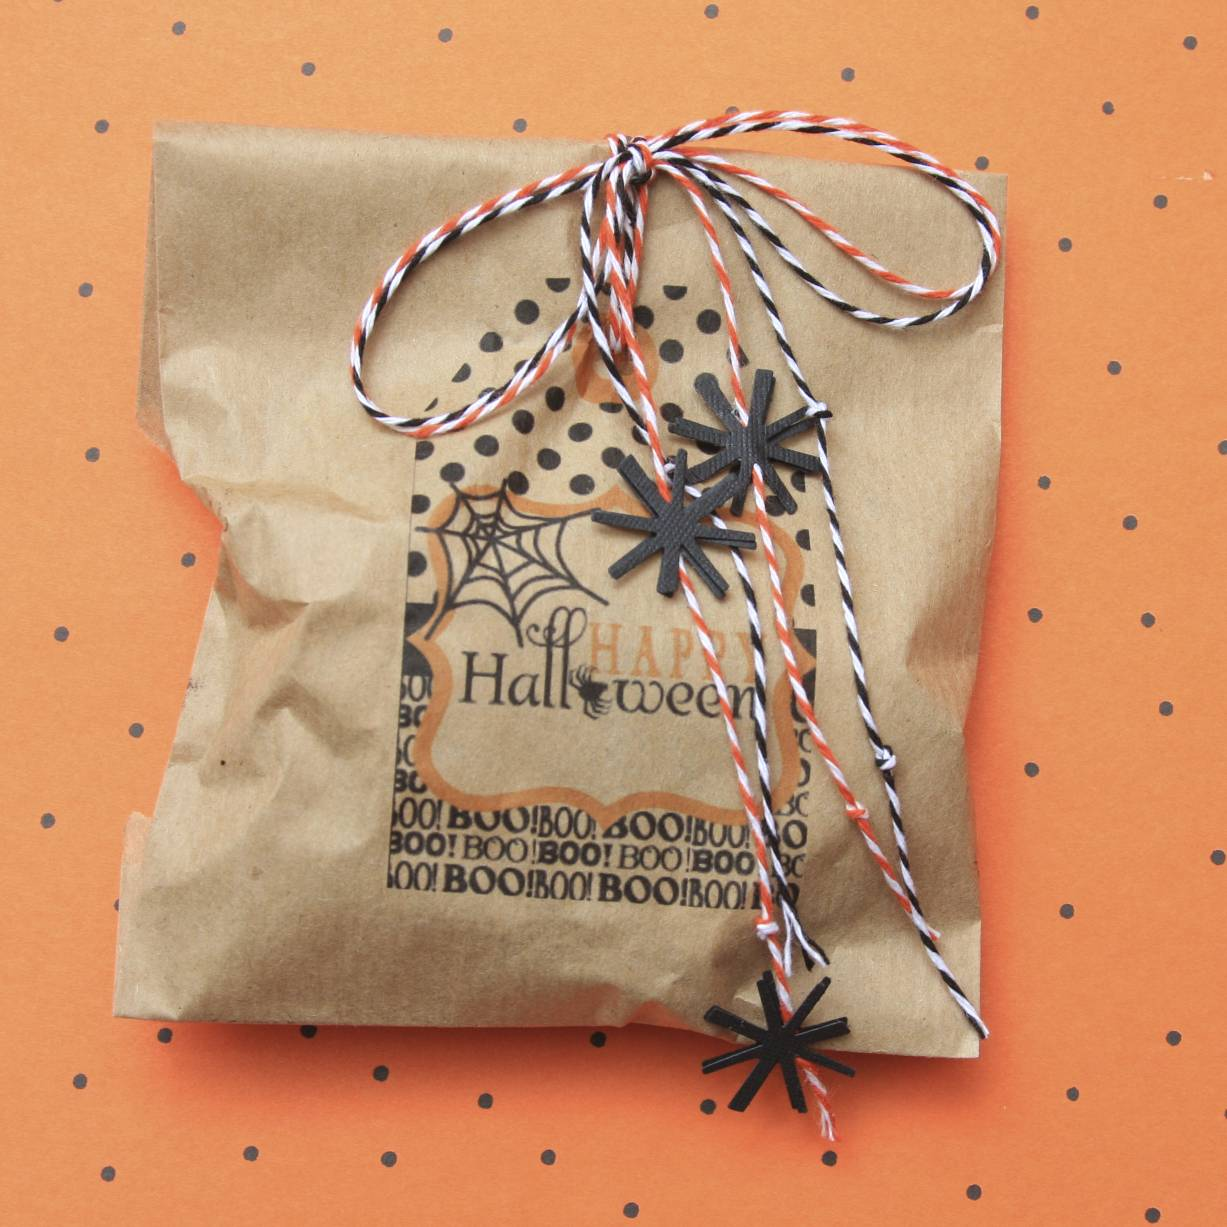 Halloween Treat Bag | iloveitallwithmonikawright.com